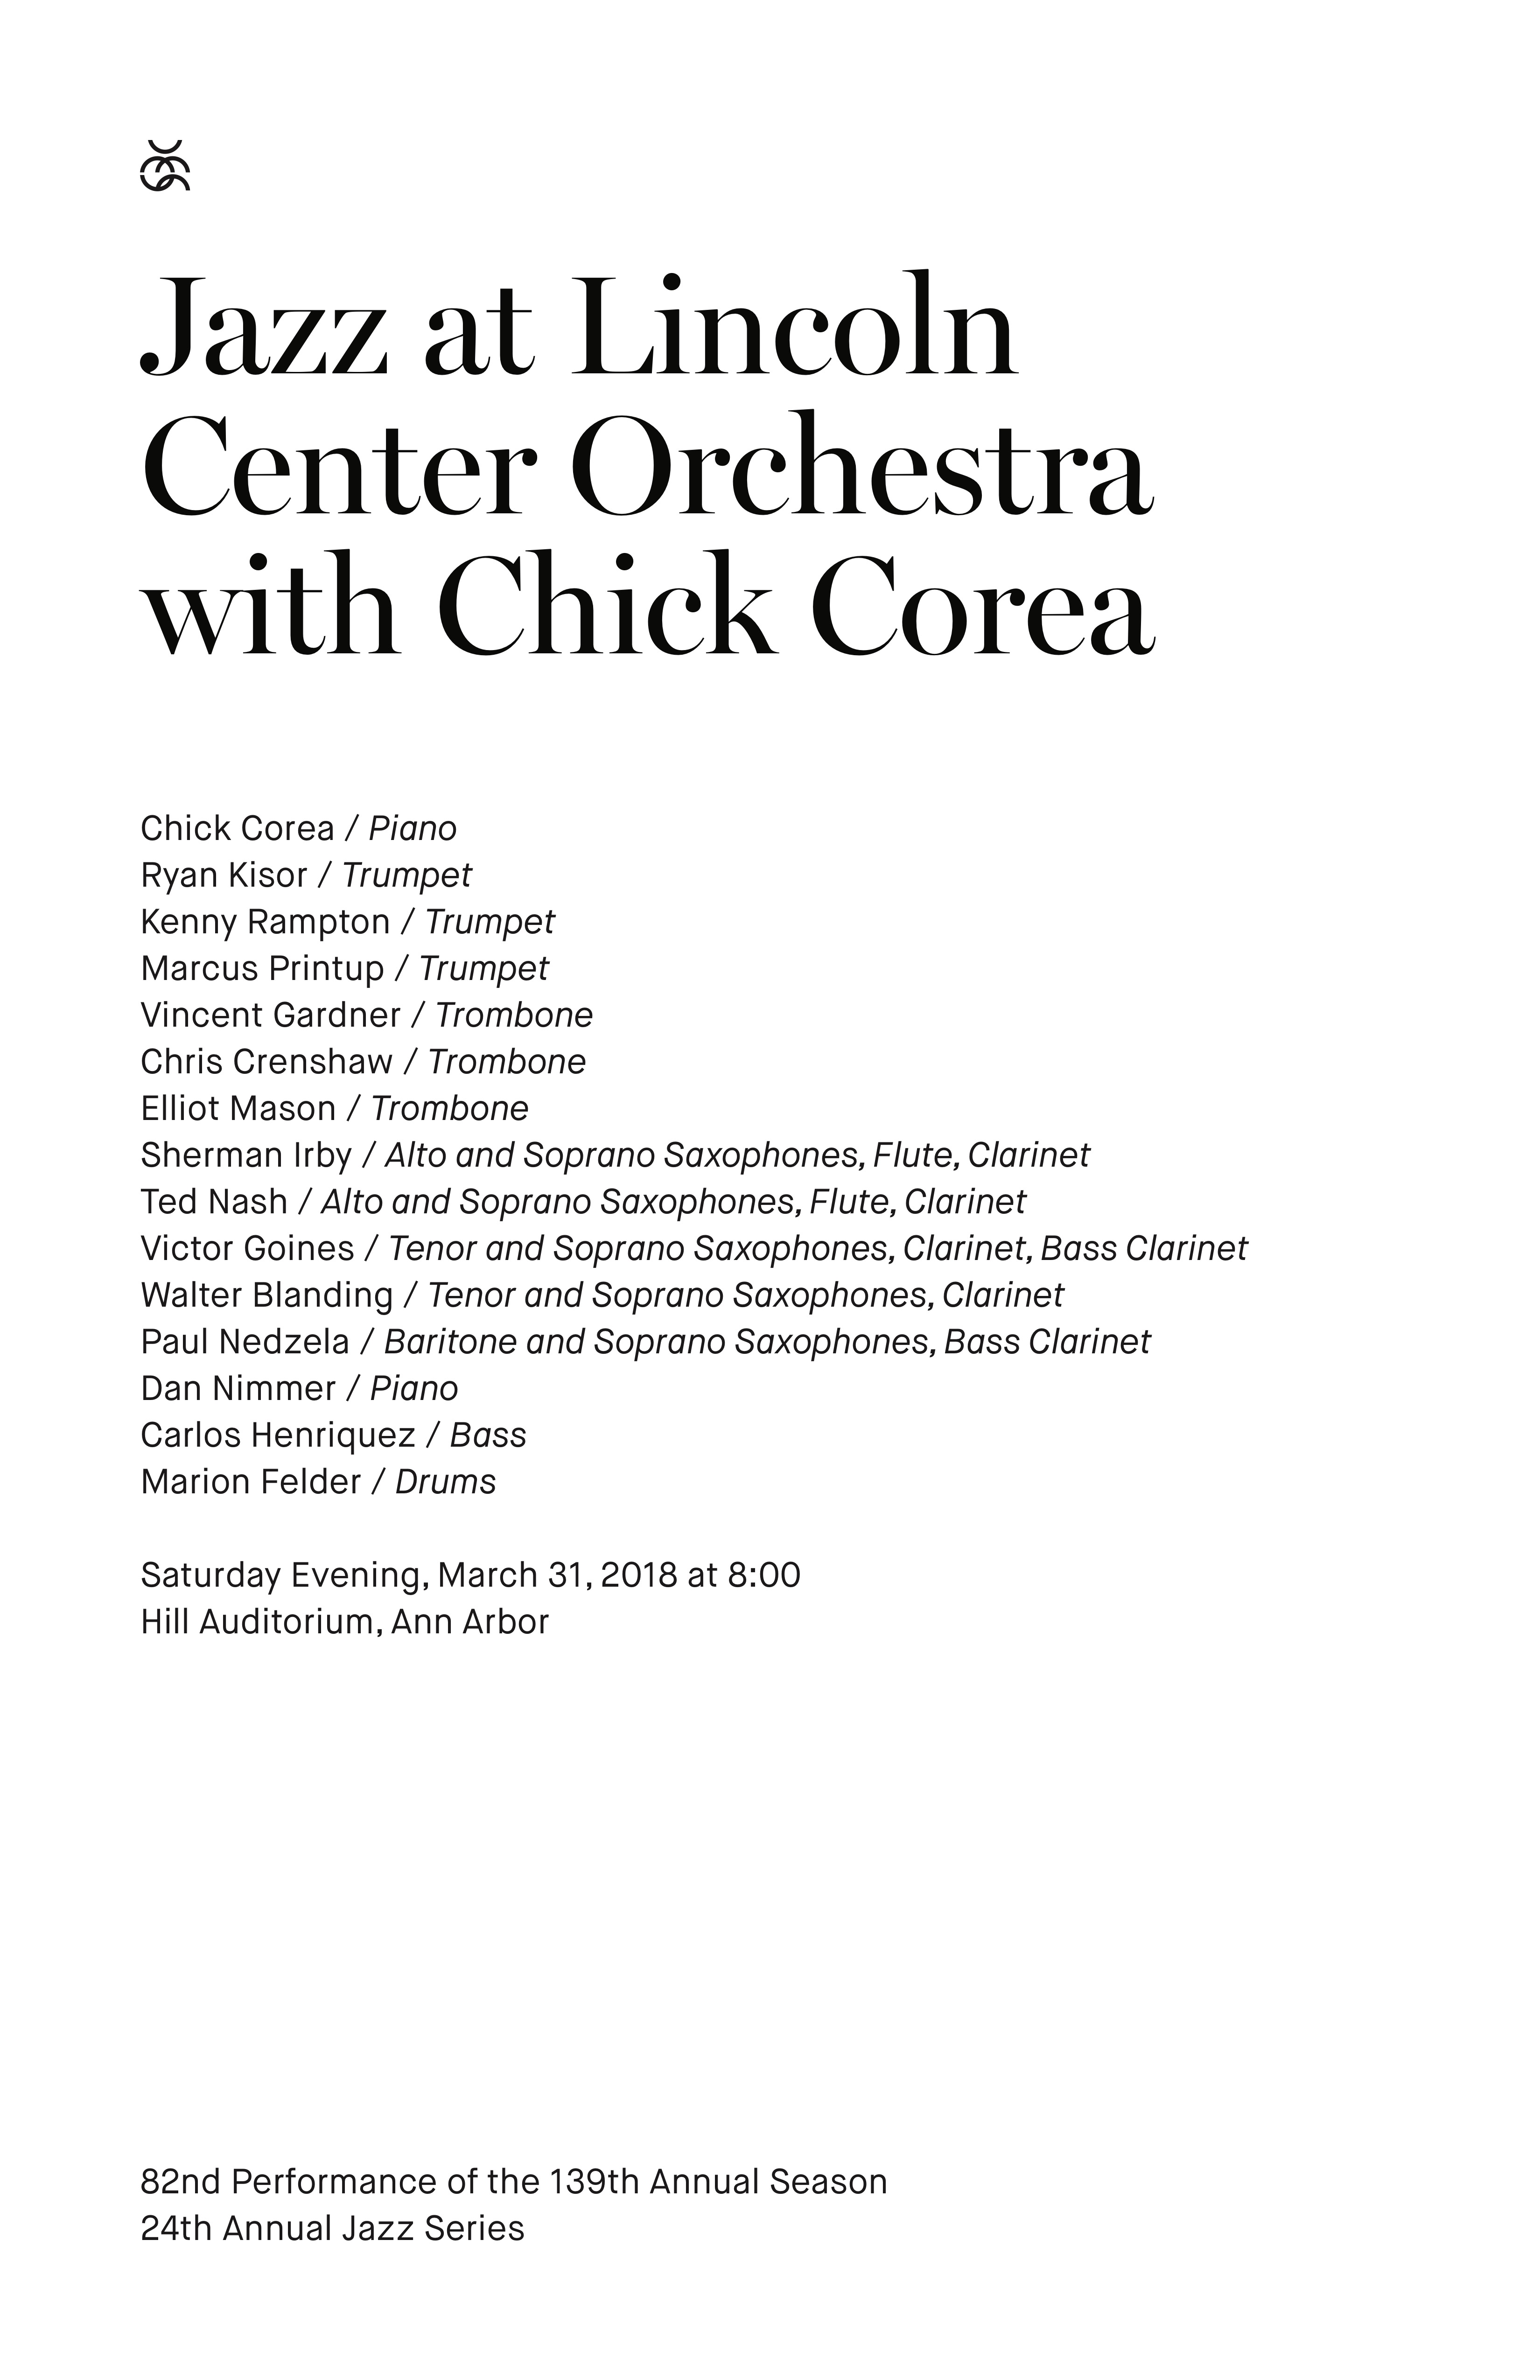 UMS Concert Program, March 31, 2018 - Jazz at Lincoln Center Orchestra with Chick Corea image